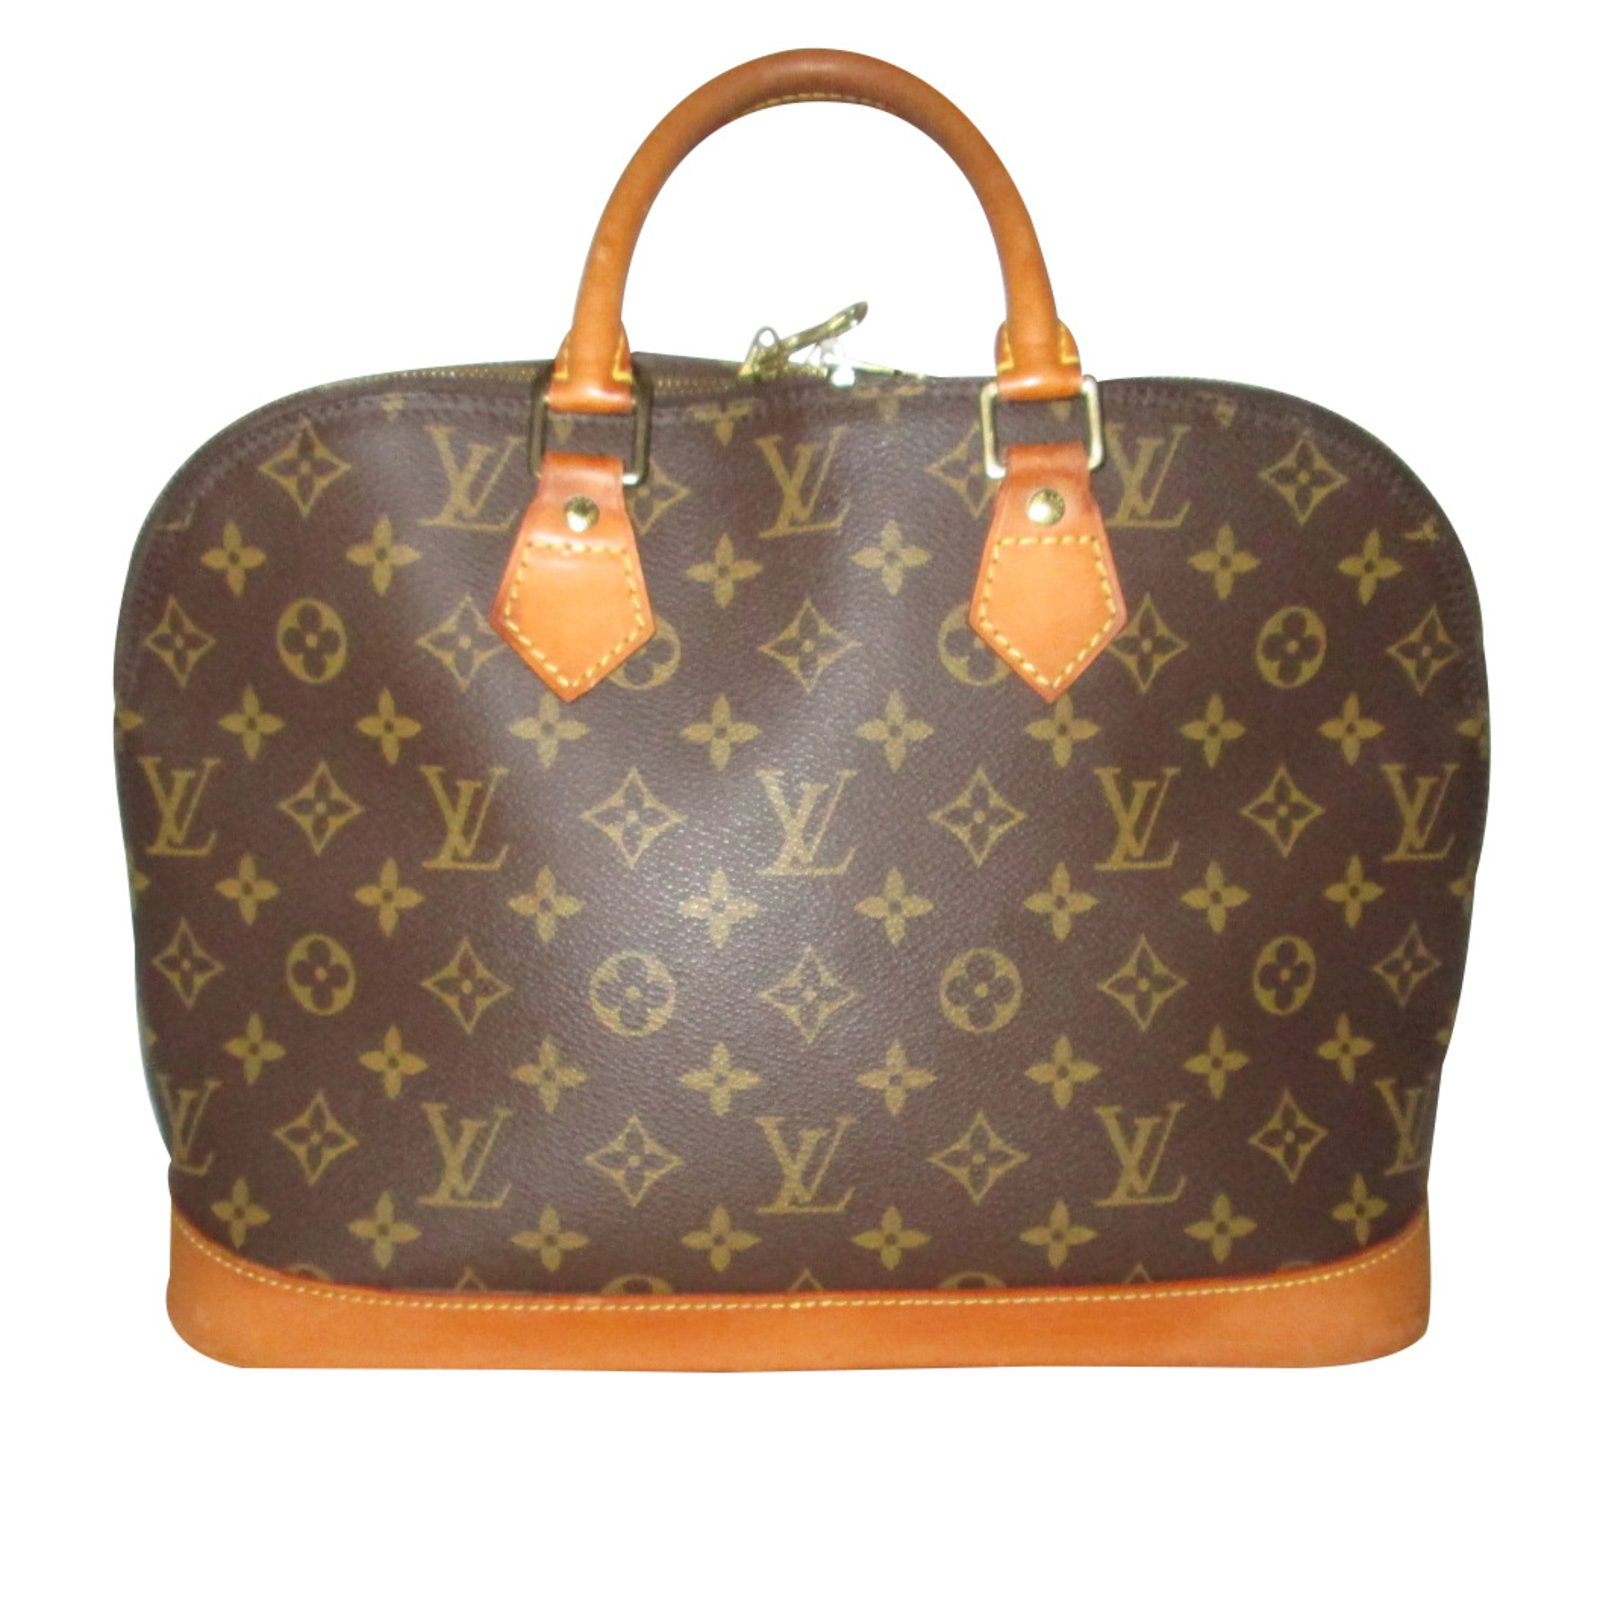 874d38e26c58d1 Marques Louis Vuitton | Stanford Center for Opportunity Policy in ...